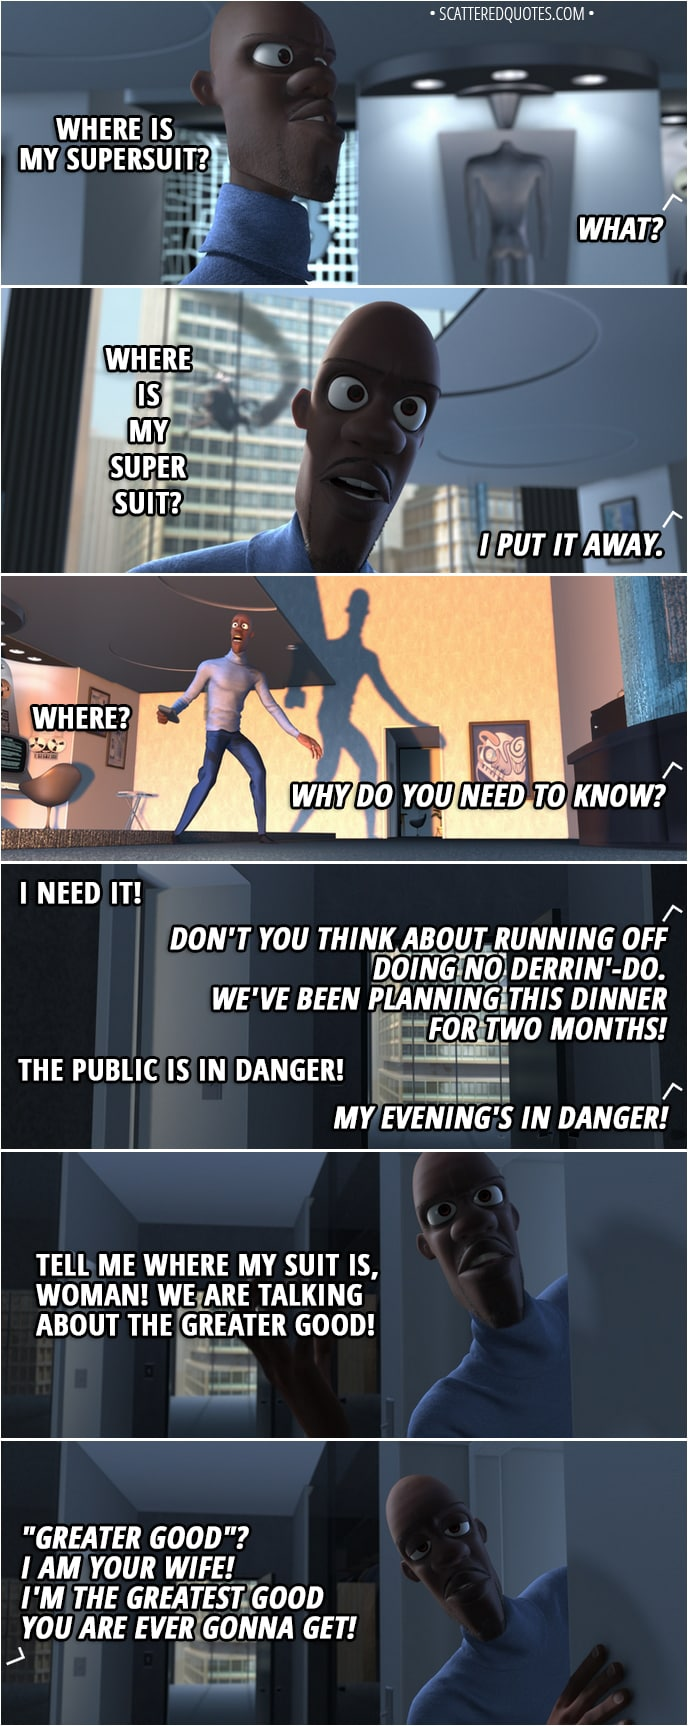 """Quote from The Incredibles (2004) - (Frozone's supersuit isn't in the secret closet display) Lucius Best: Honey? Honey: What? Lucius Best: Where is my supersuit? Honey: What? Lucius Best: Where is my supersuit? Honey: I put it away. Lucius Best: Where? Honey: Why do you need to know? Lucius Best: I need it! Honey: Don't you think about running off doing no derrin'-do. We've been planning this dinner for two months! Lucius Best: The public is in danger! Honey: My evening's in danger! Lucius Best: Tell me where my suit is, woman! We are talking about the greater good! Honey: """"Greater good""""? I am your wife! I'm the greatest good you are ever gonna get!"""